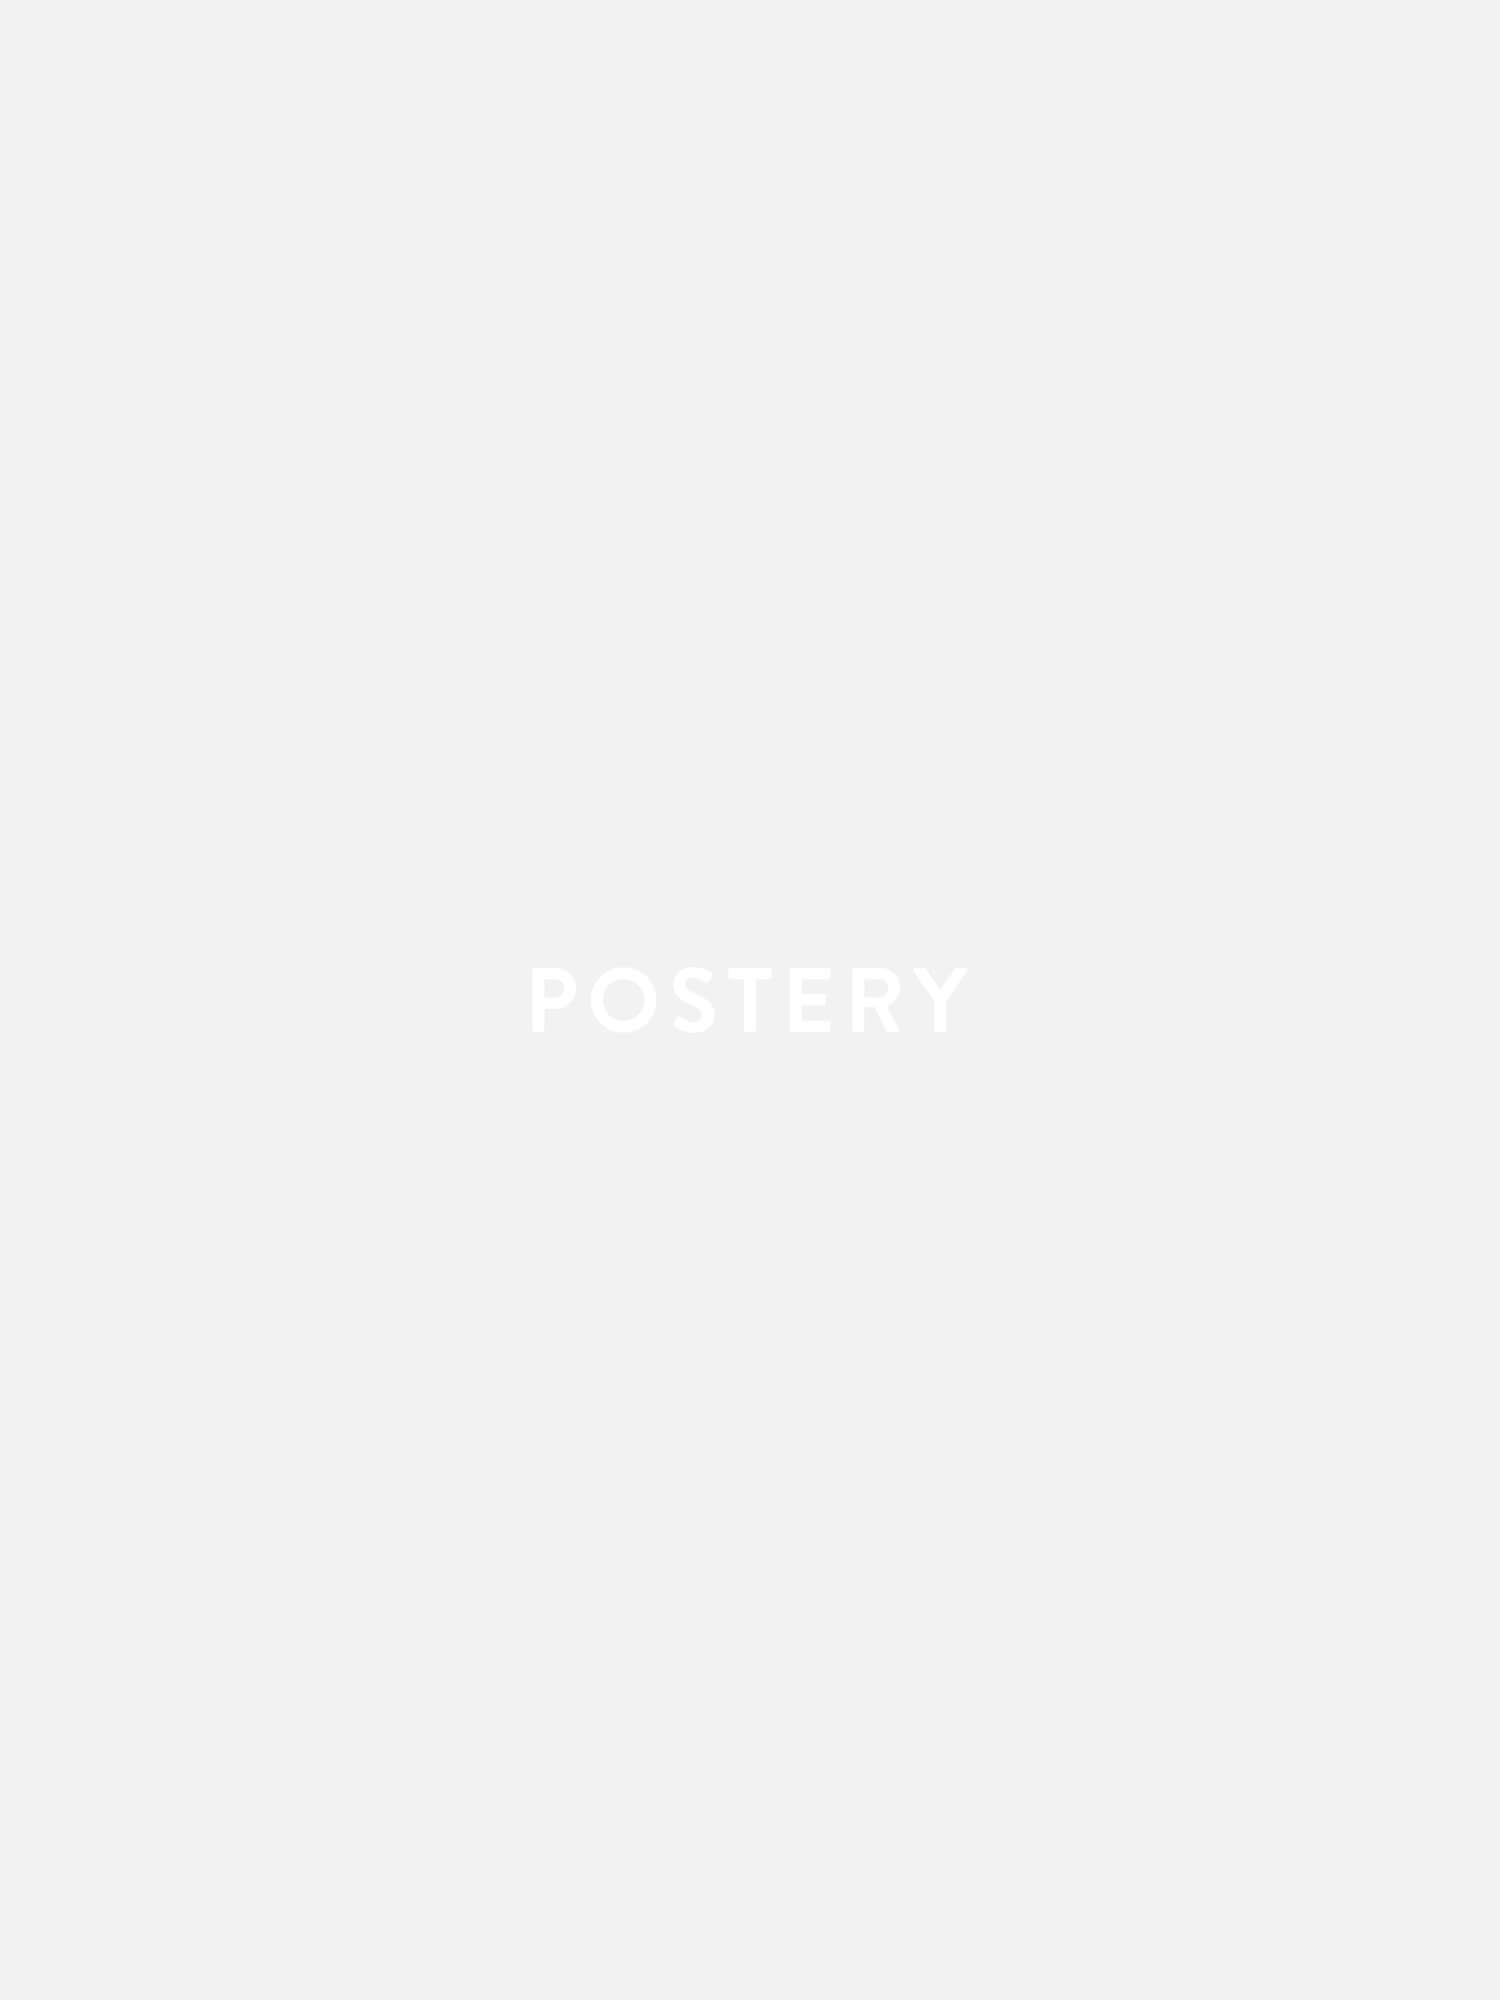 Closed Window Poster